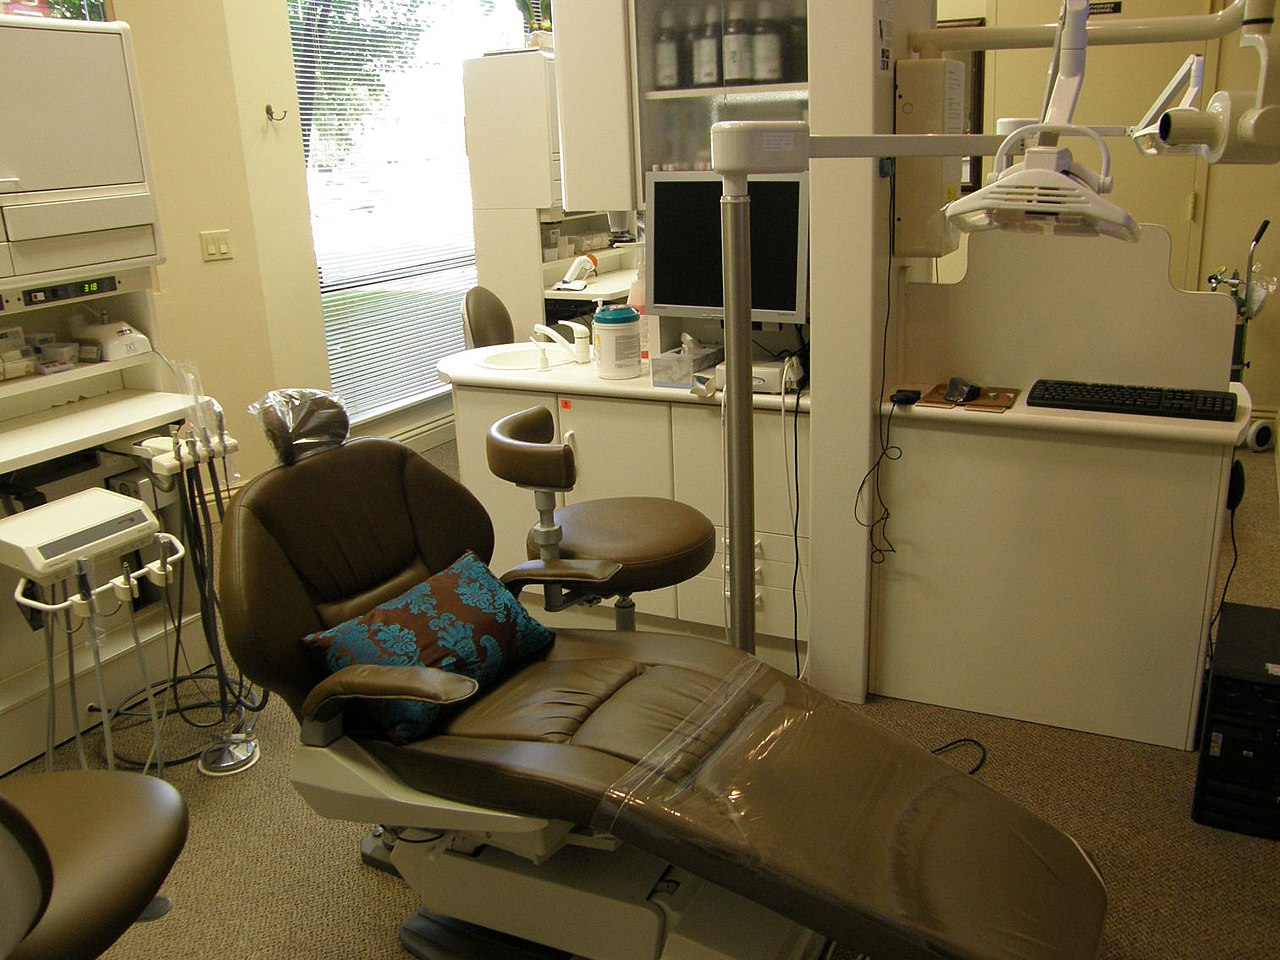 Anesthesia Free Teeth Cleaning For Dogs Sacramento